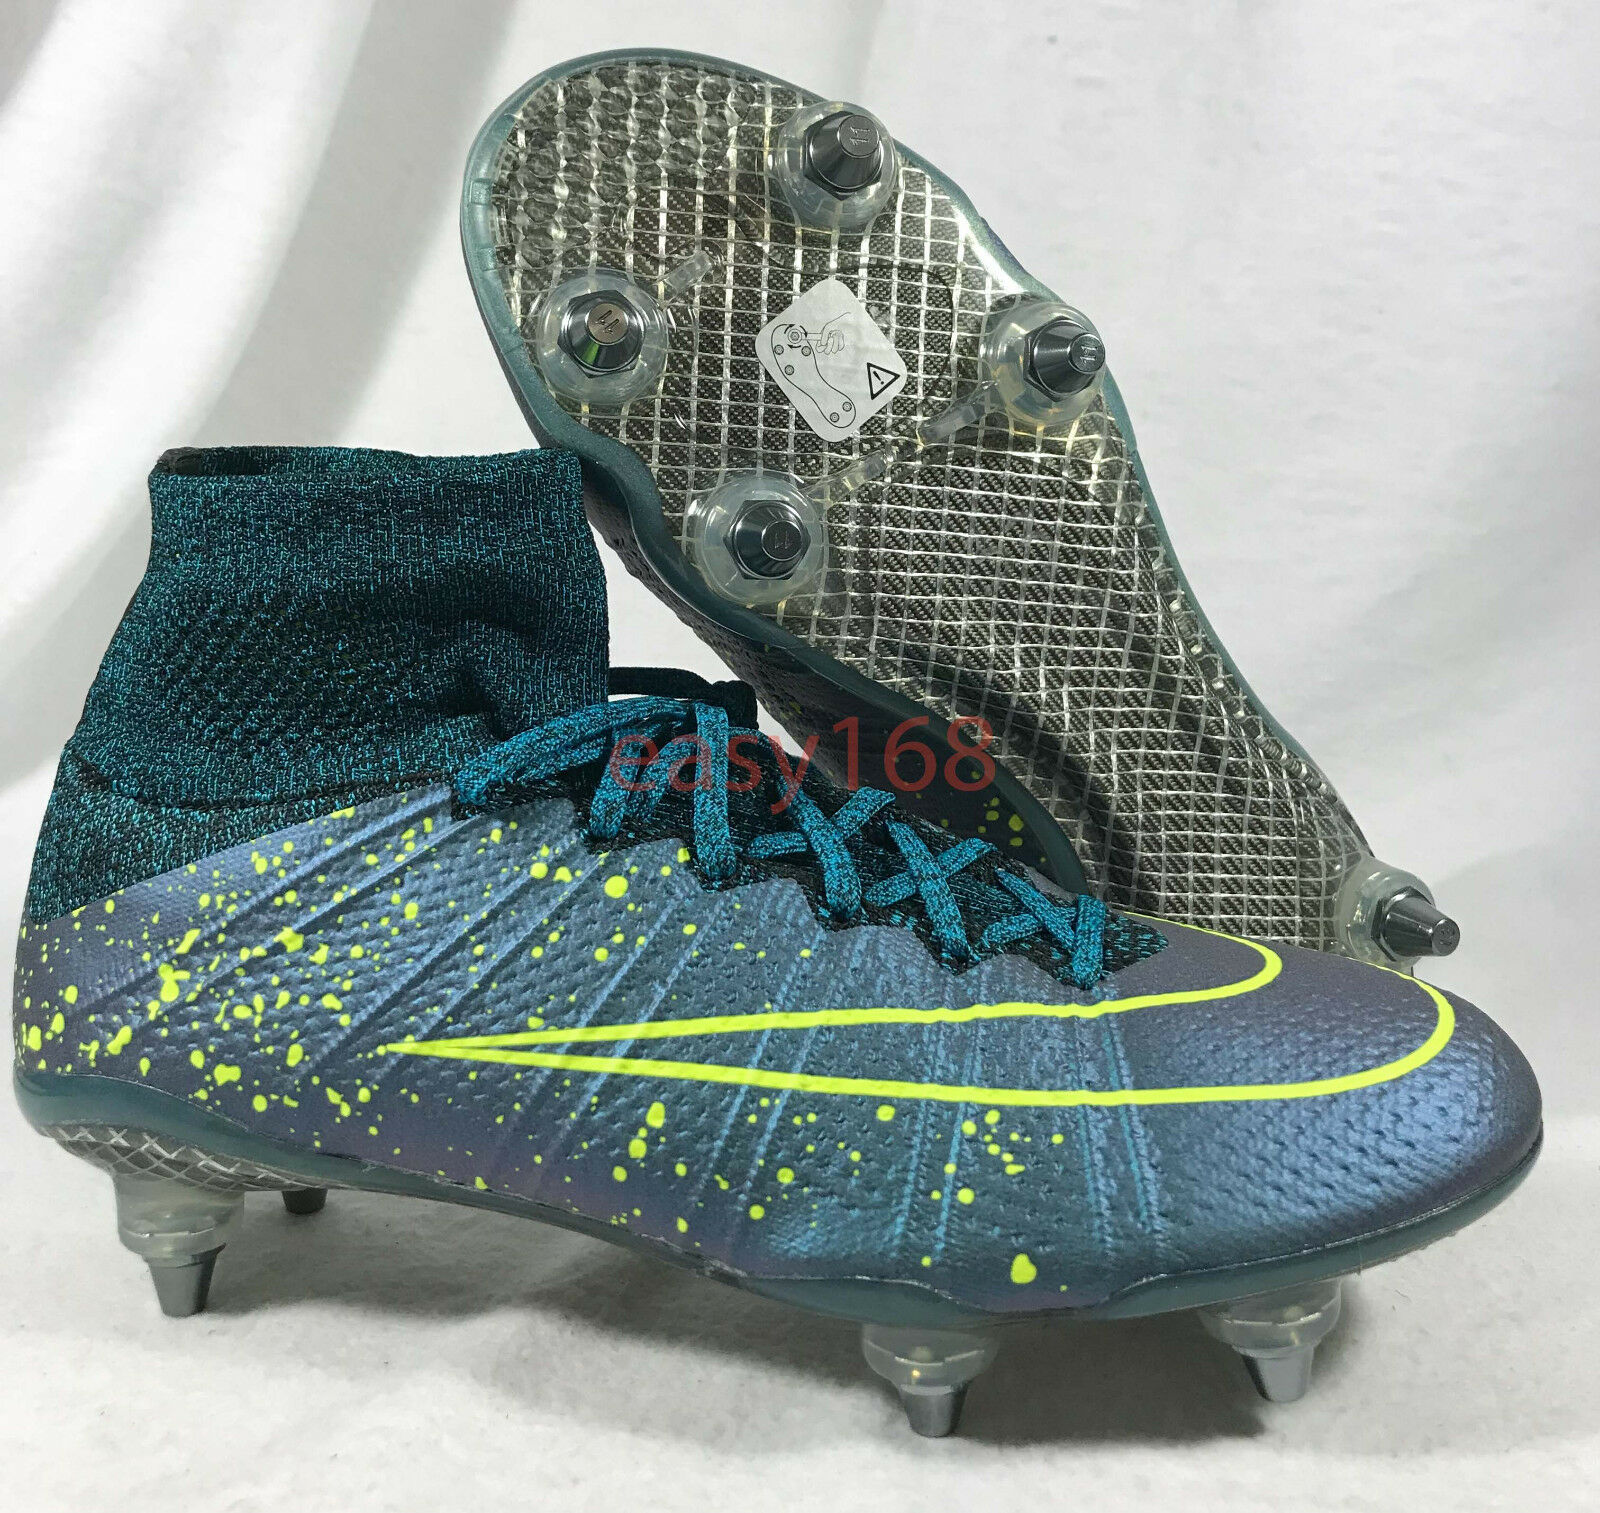 New Nike Mercurial Superfly SG Pro Sz 7 Mens Soccer 40 Price reduction Metal Cleats The latest discount shoes for men and women